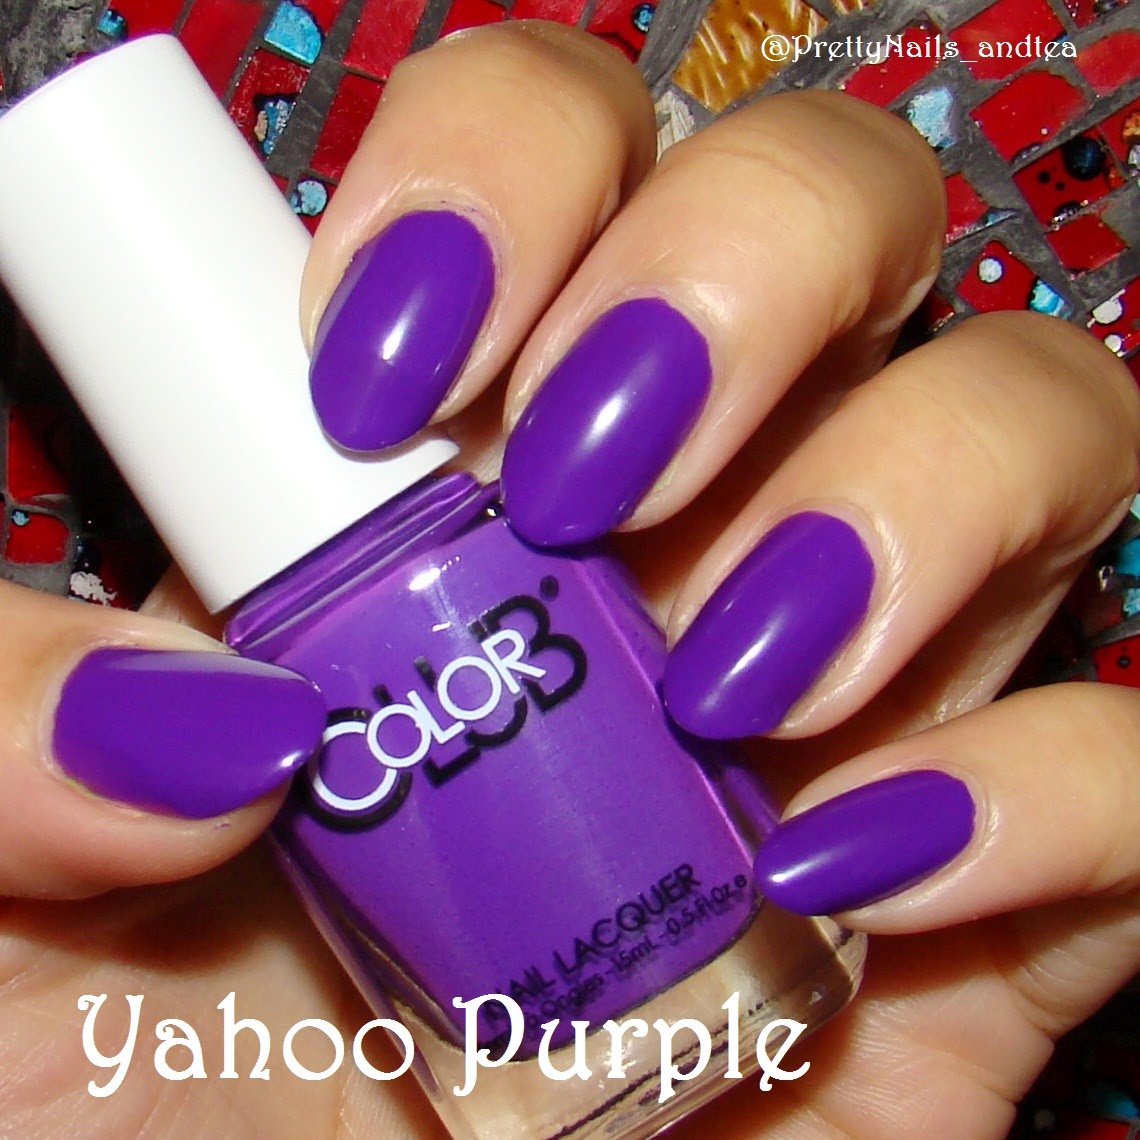 yahoo purple color club